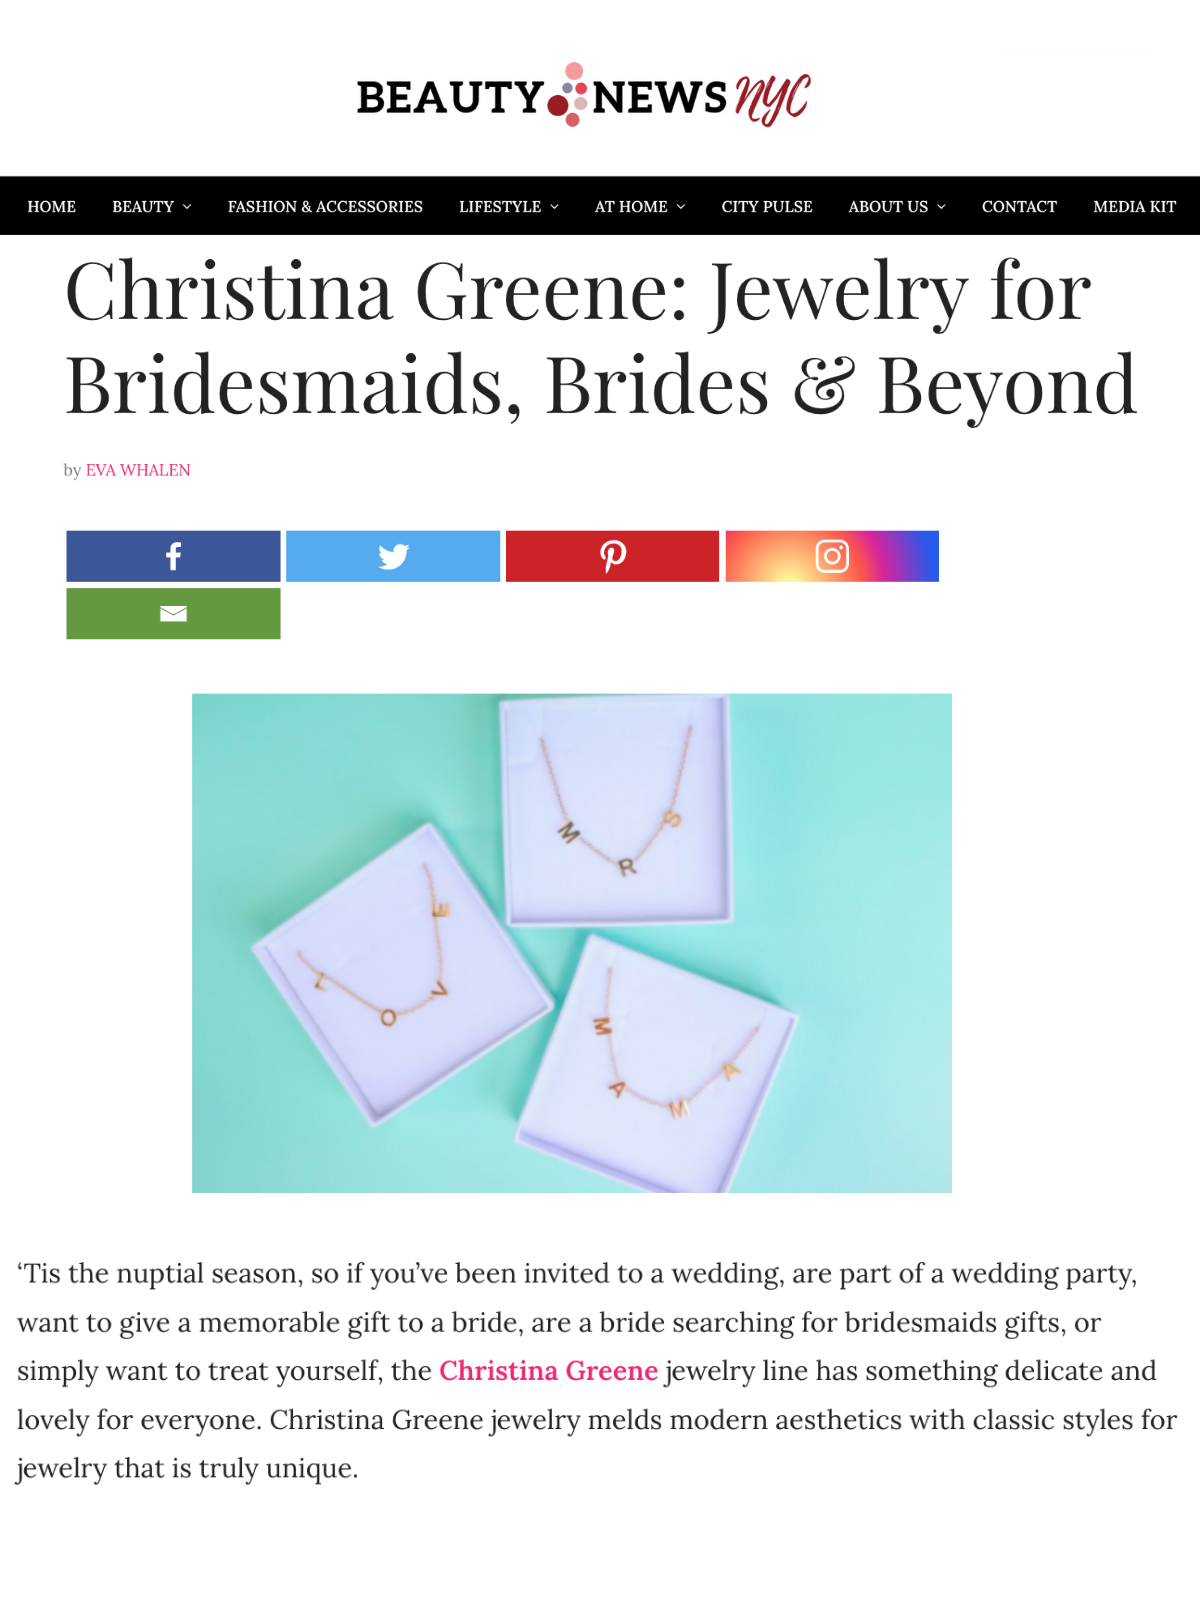 Screenshot of a blog post by Beauty News NYC about Christina Greene Jewelry's new MRS Necklace as a perfect gift for Brides and Brides-To-Be.